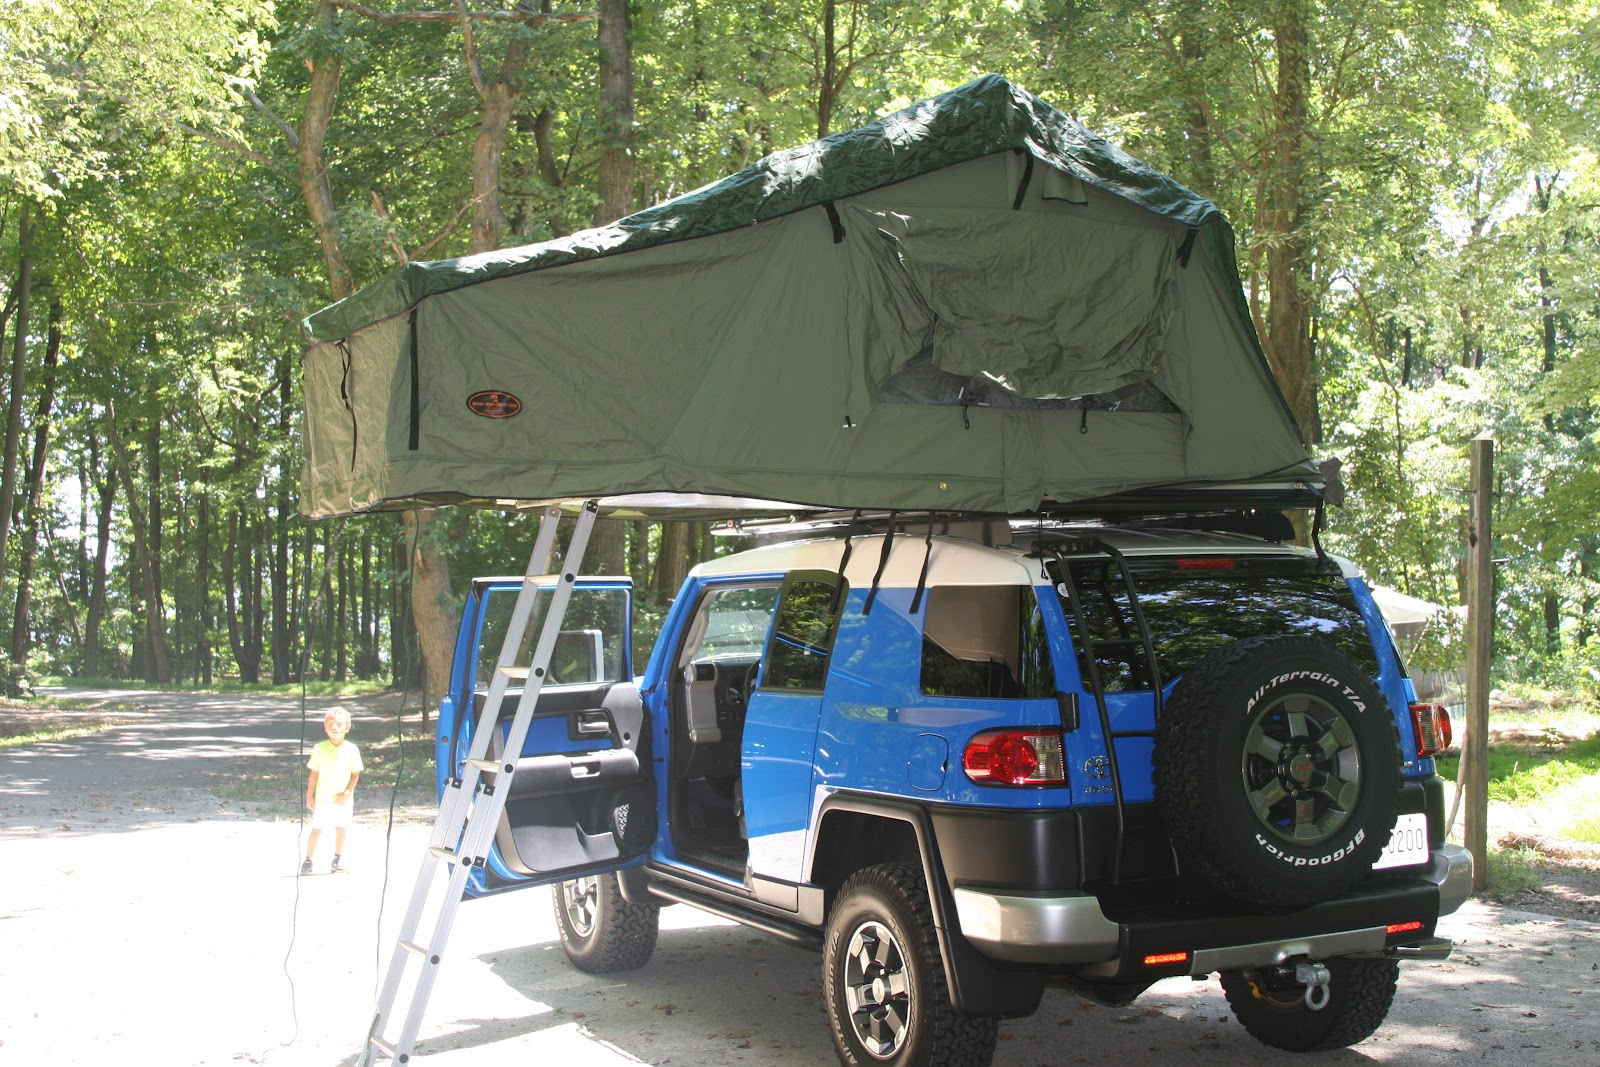 My Fj Cruiser Roof Top Tent